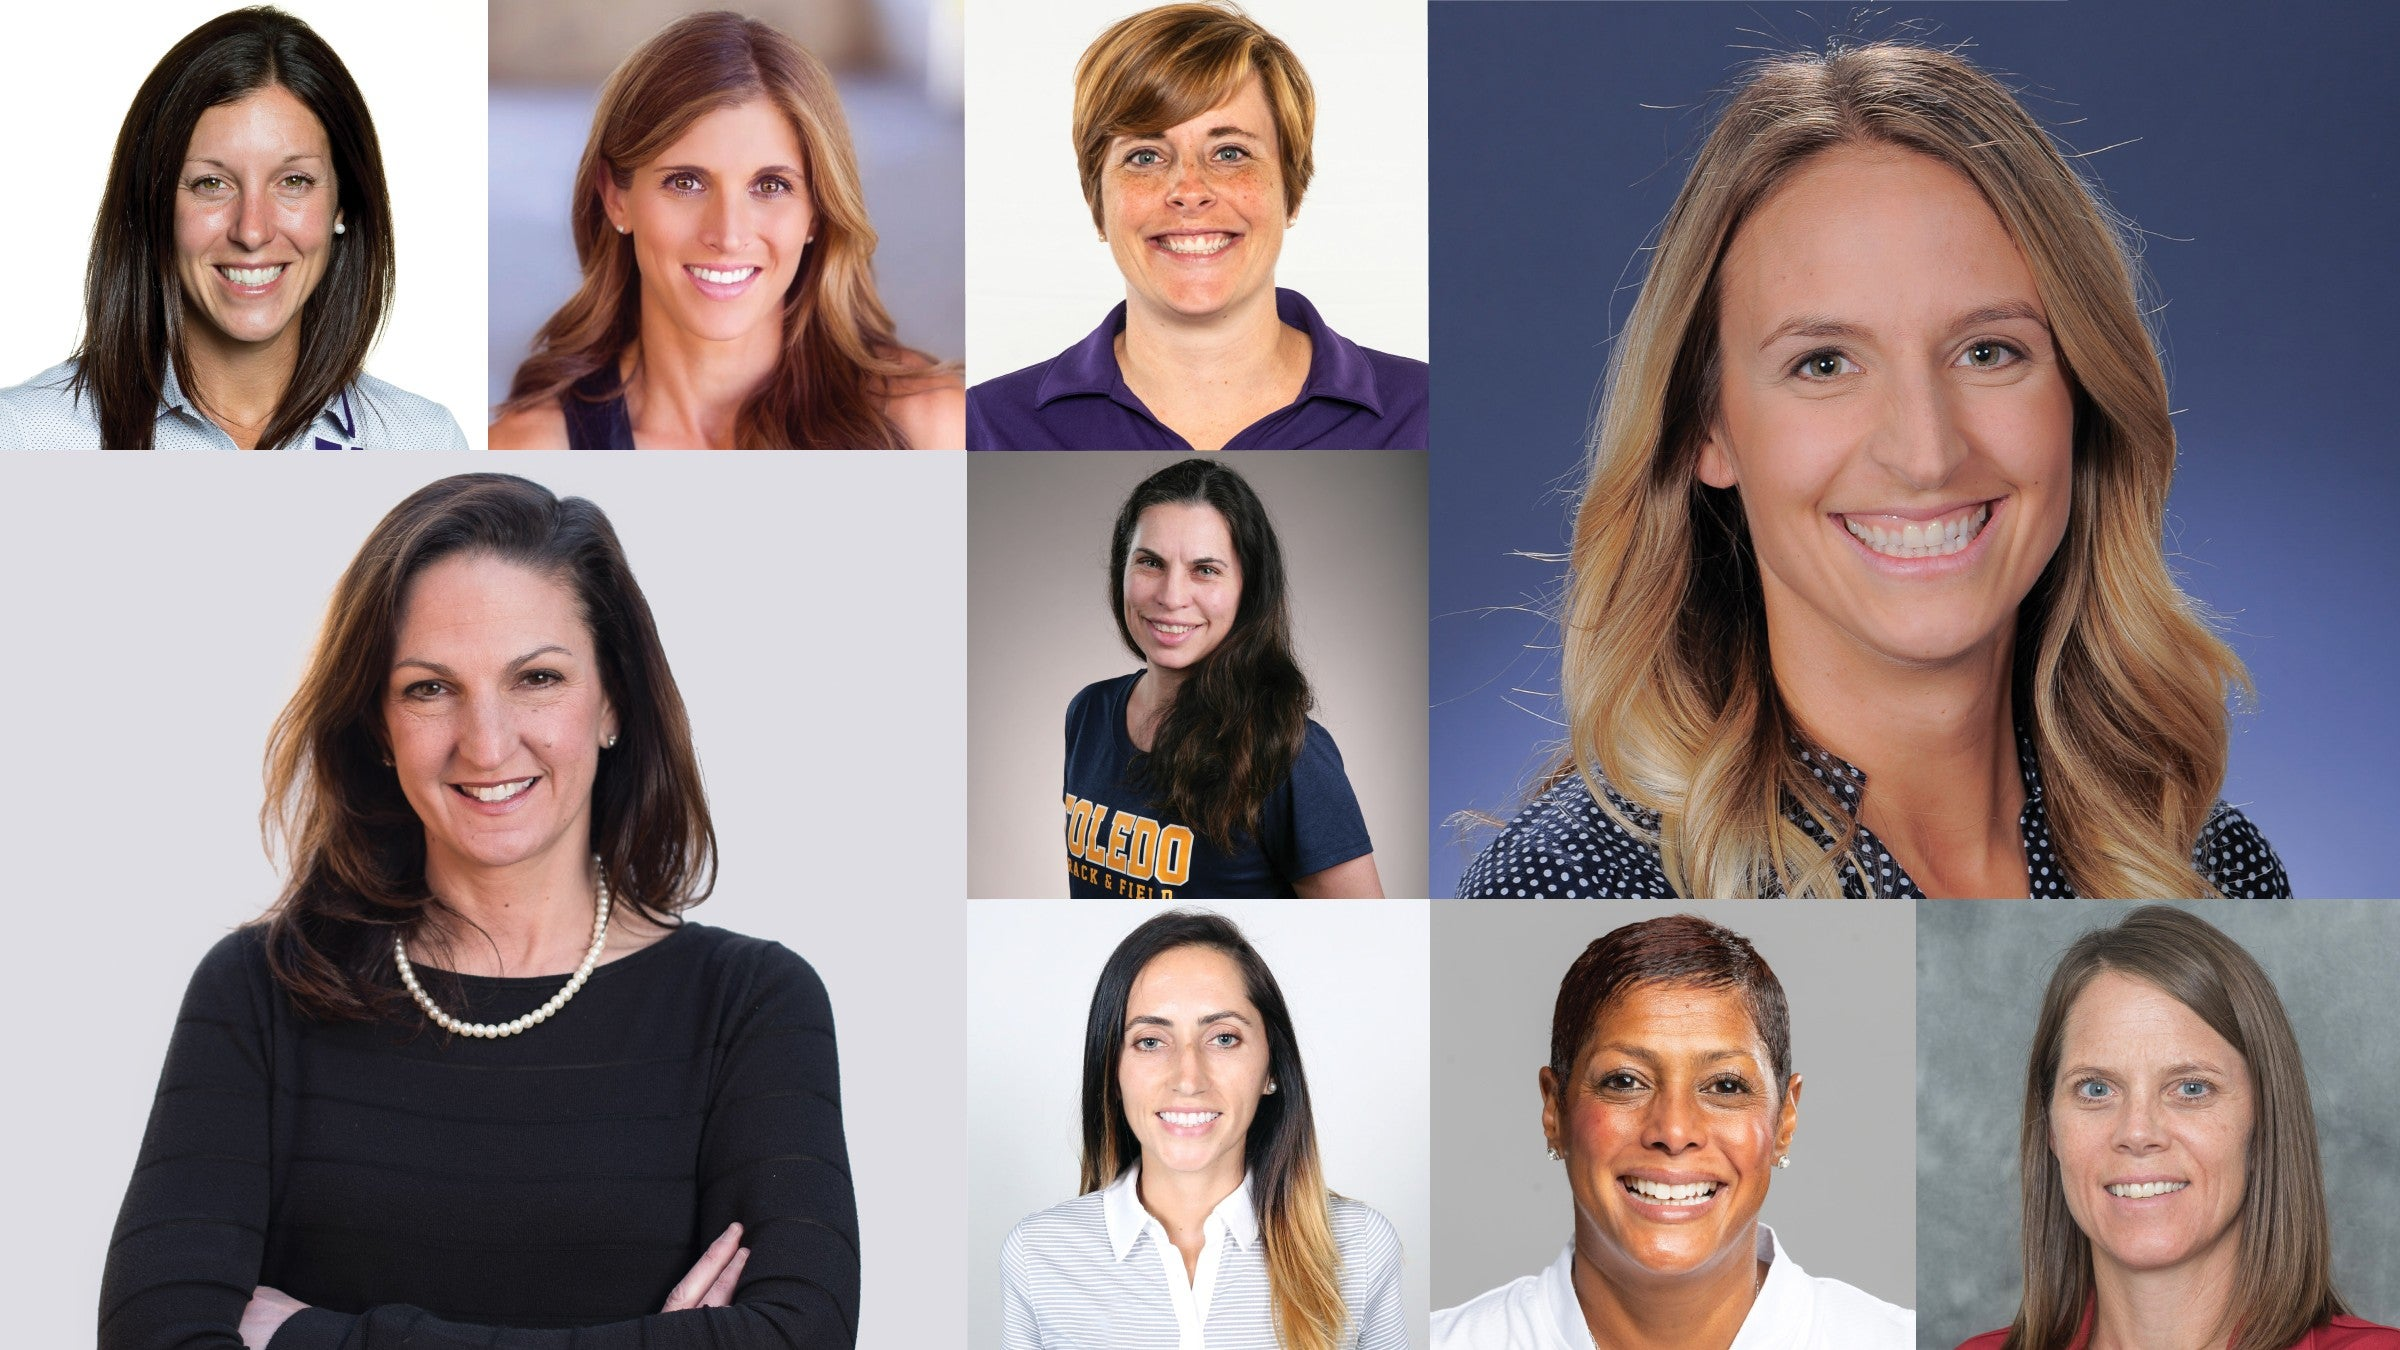 The top college running coaches offer their advice for female runners.